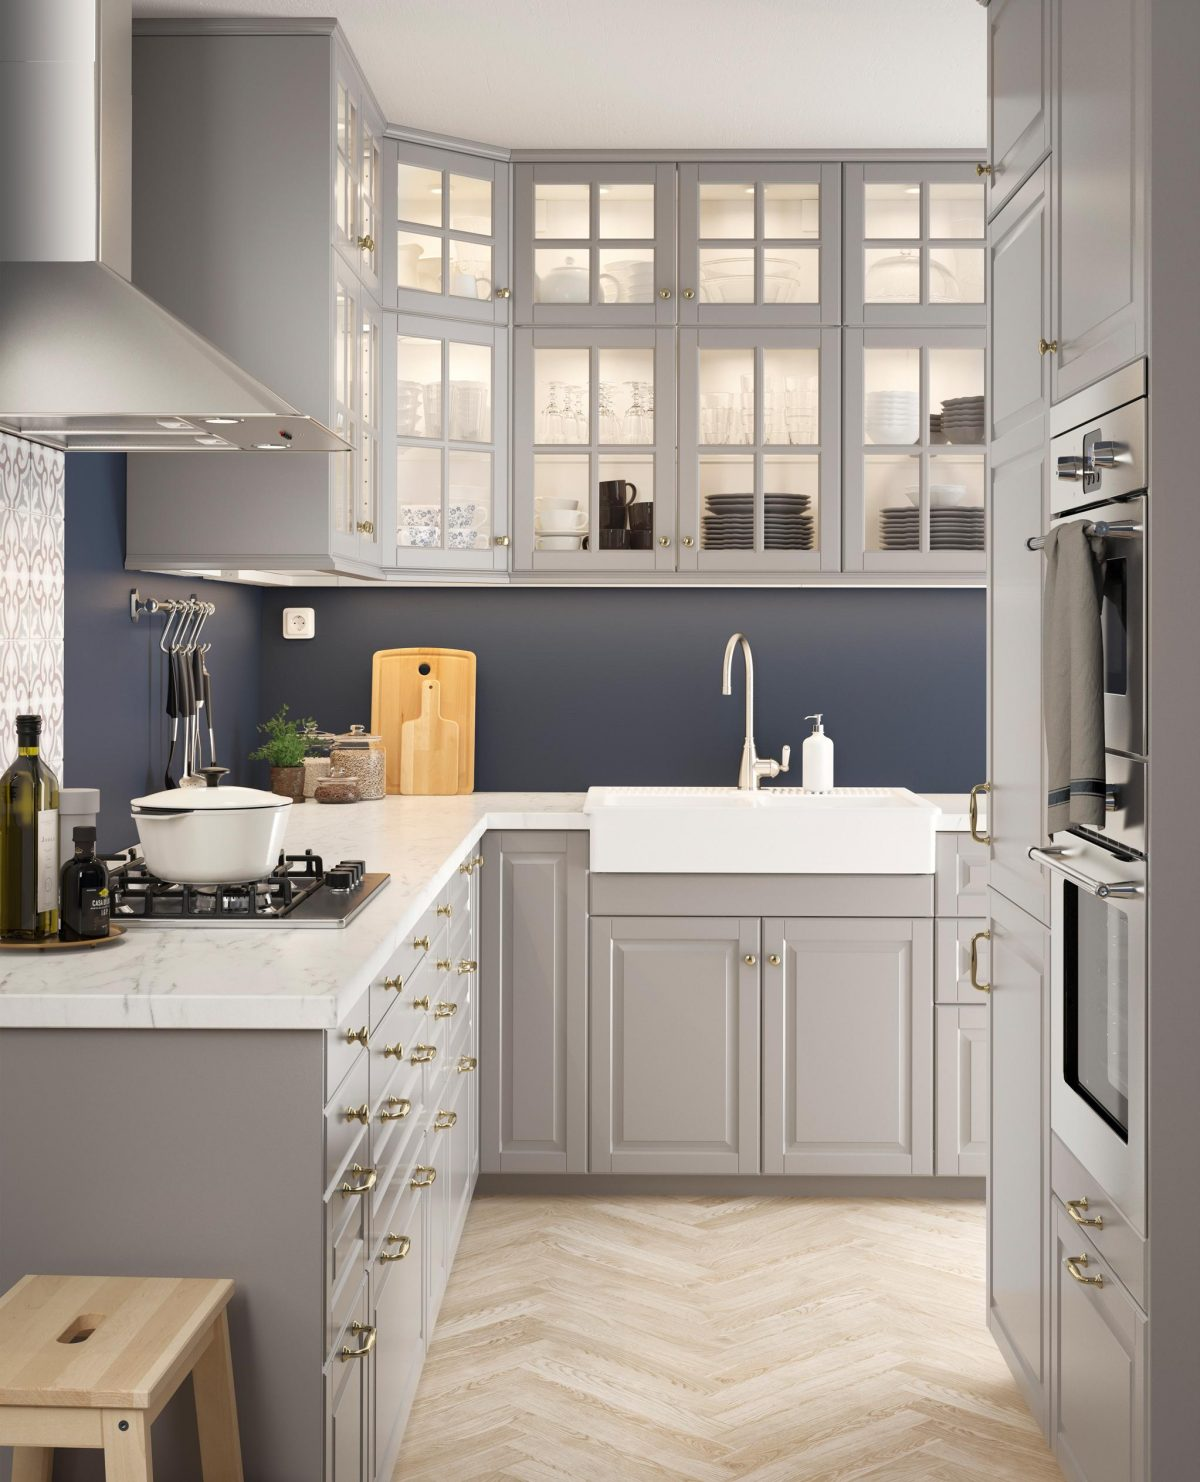 Kitchen Cabinet Warranty Ikea Is An Ikea Kitchen Right For Your Home Great Idea Hub